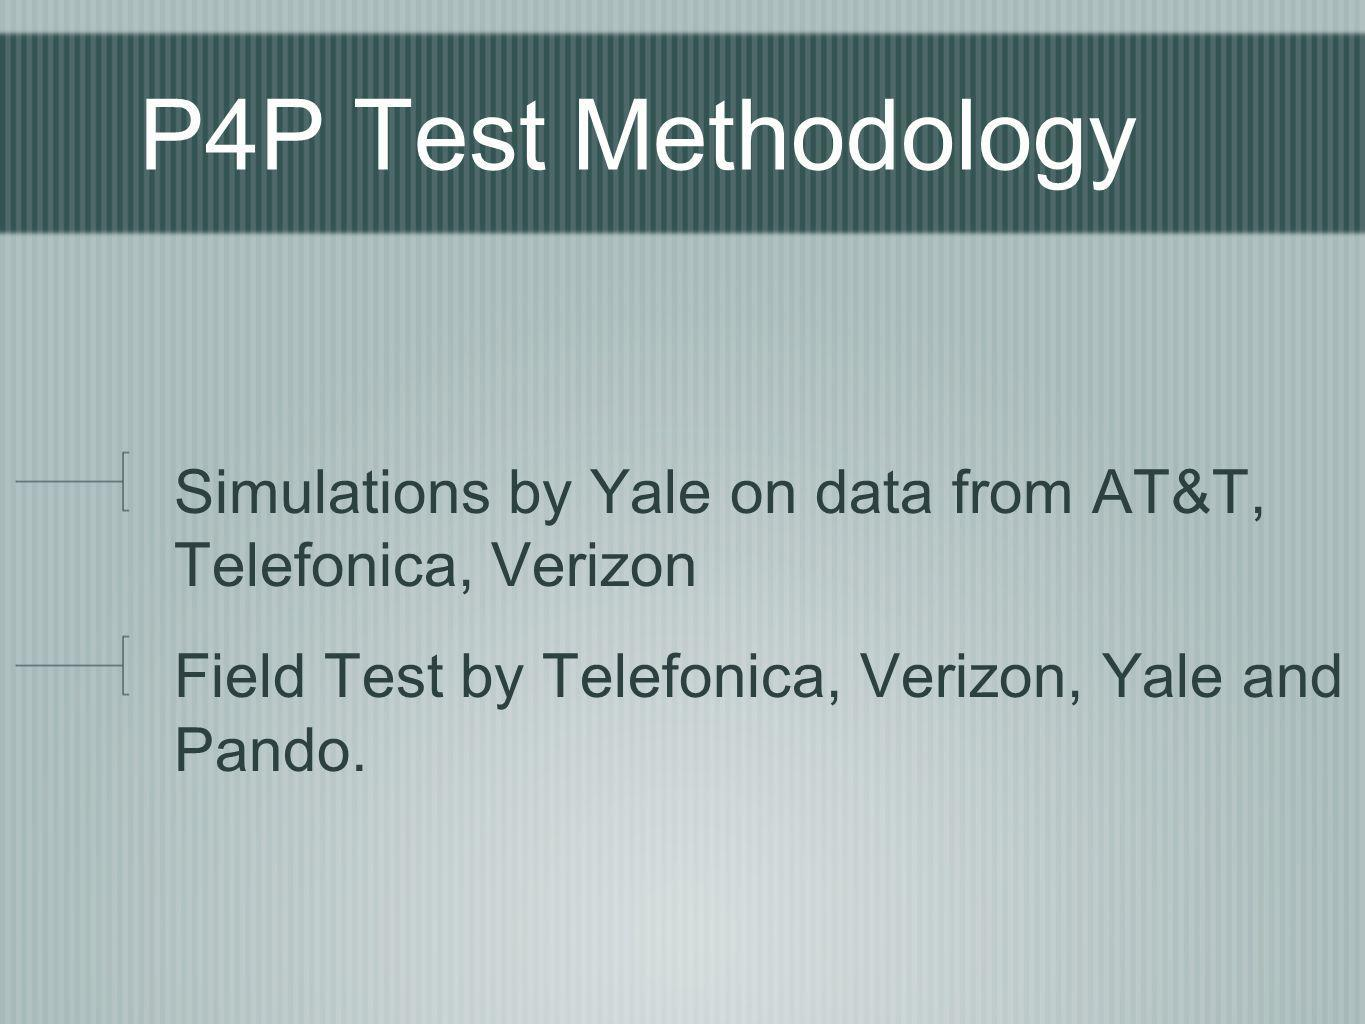 P4P Test Methodology Simulations by Yale on data from AT&T, Telefonica, Verizon Field Test by Telefonica, Verizon, Yale and Pando.